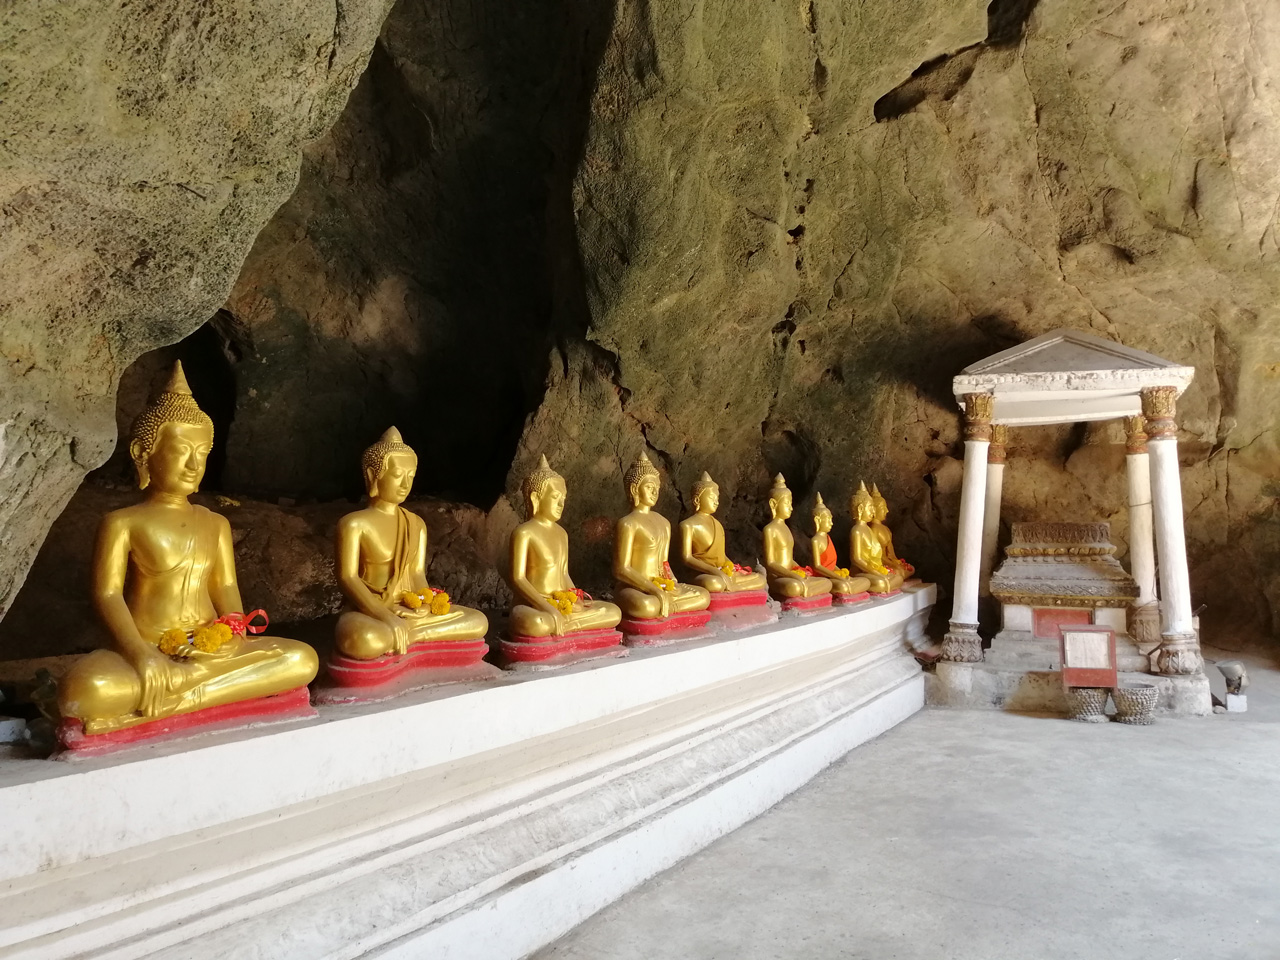 khao luang cave temple 1